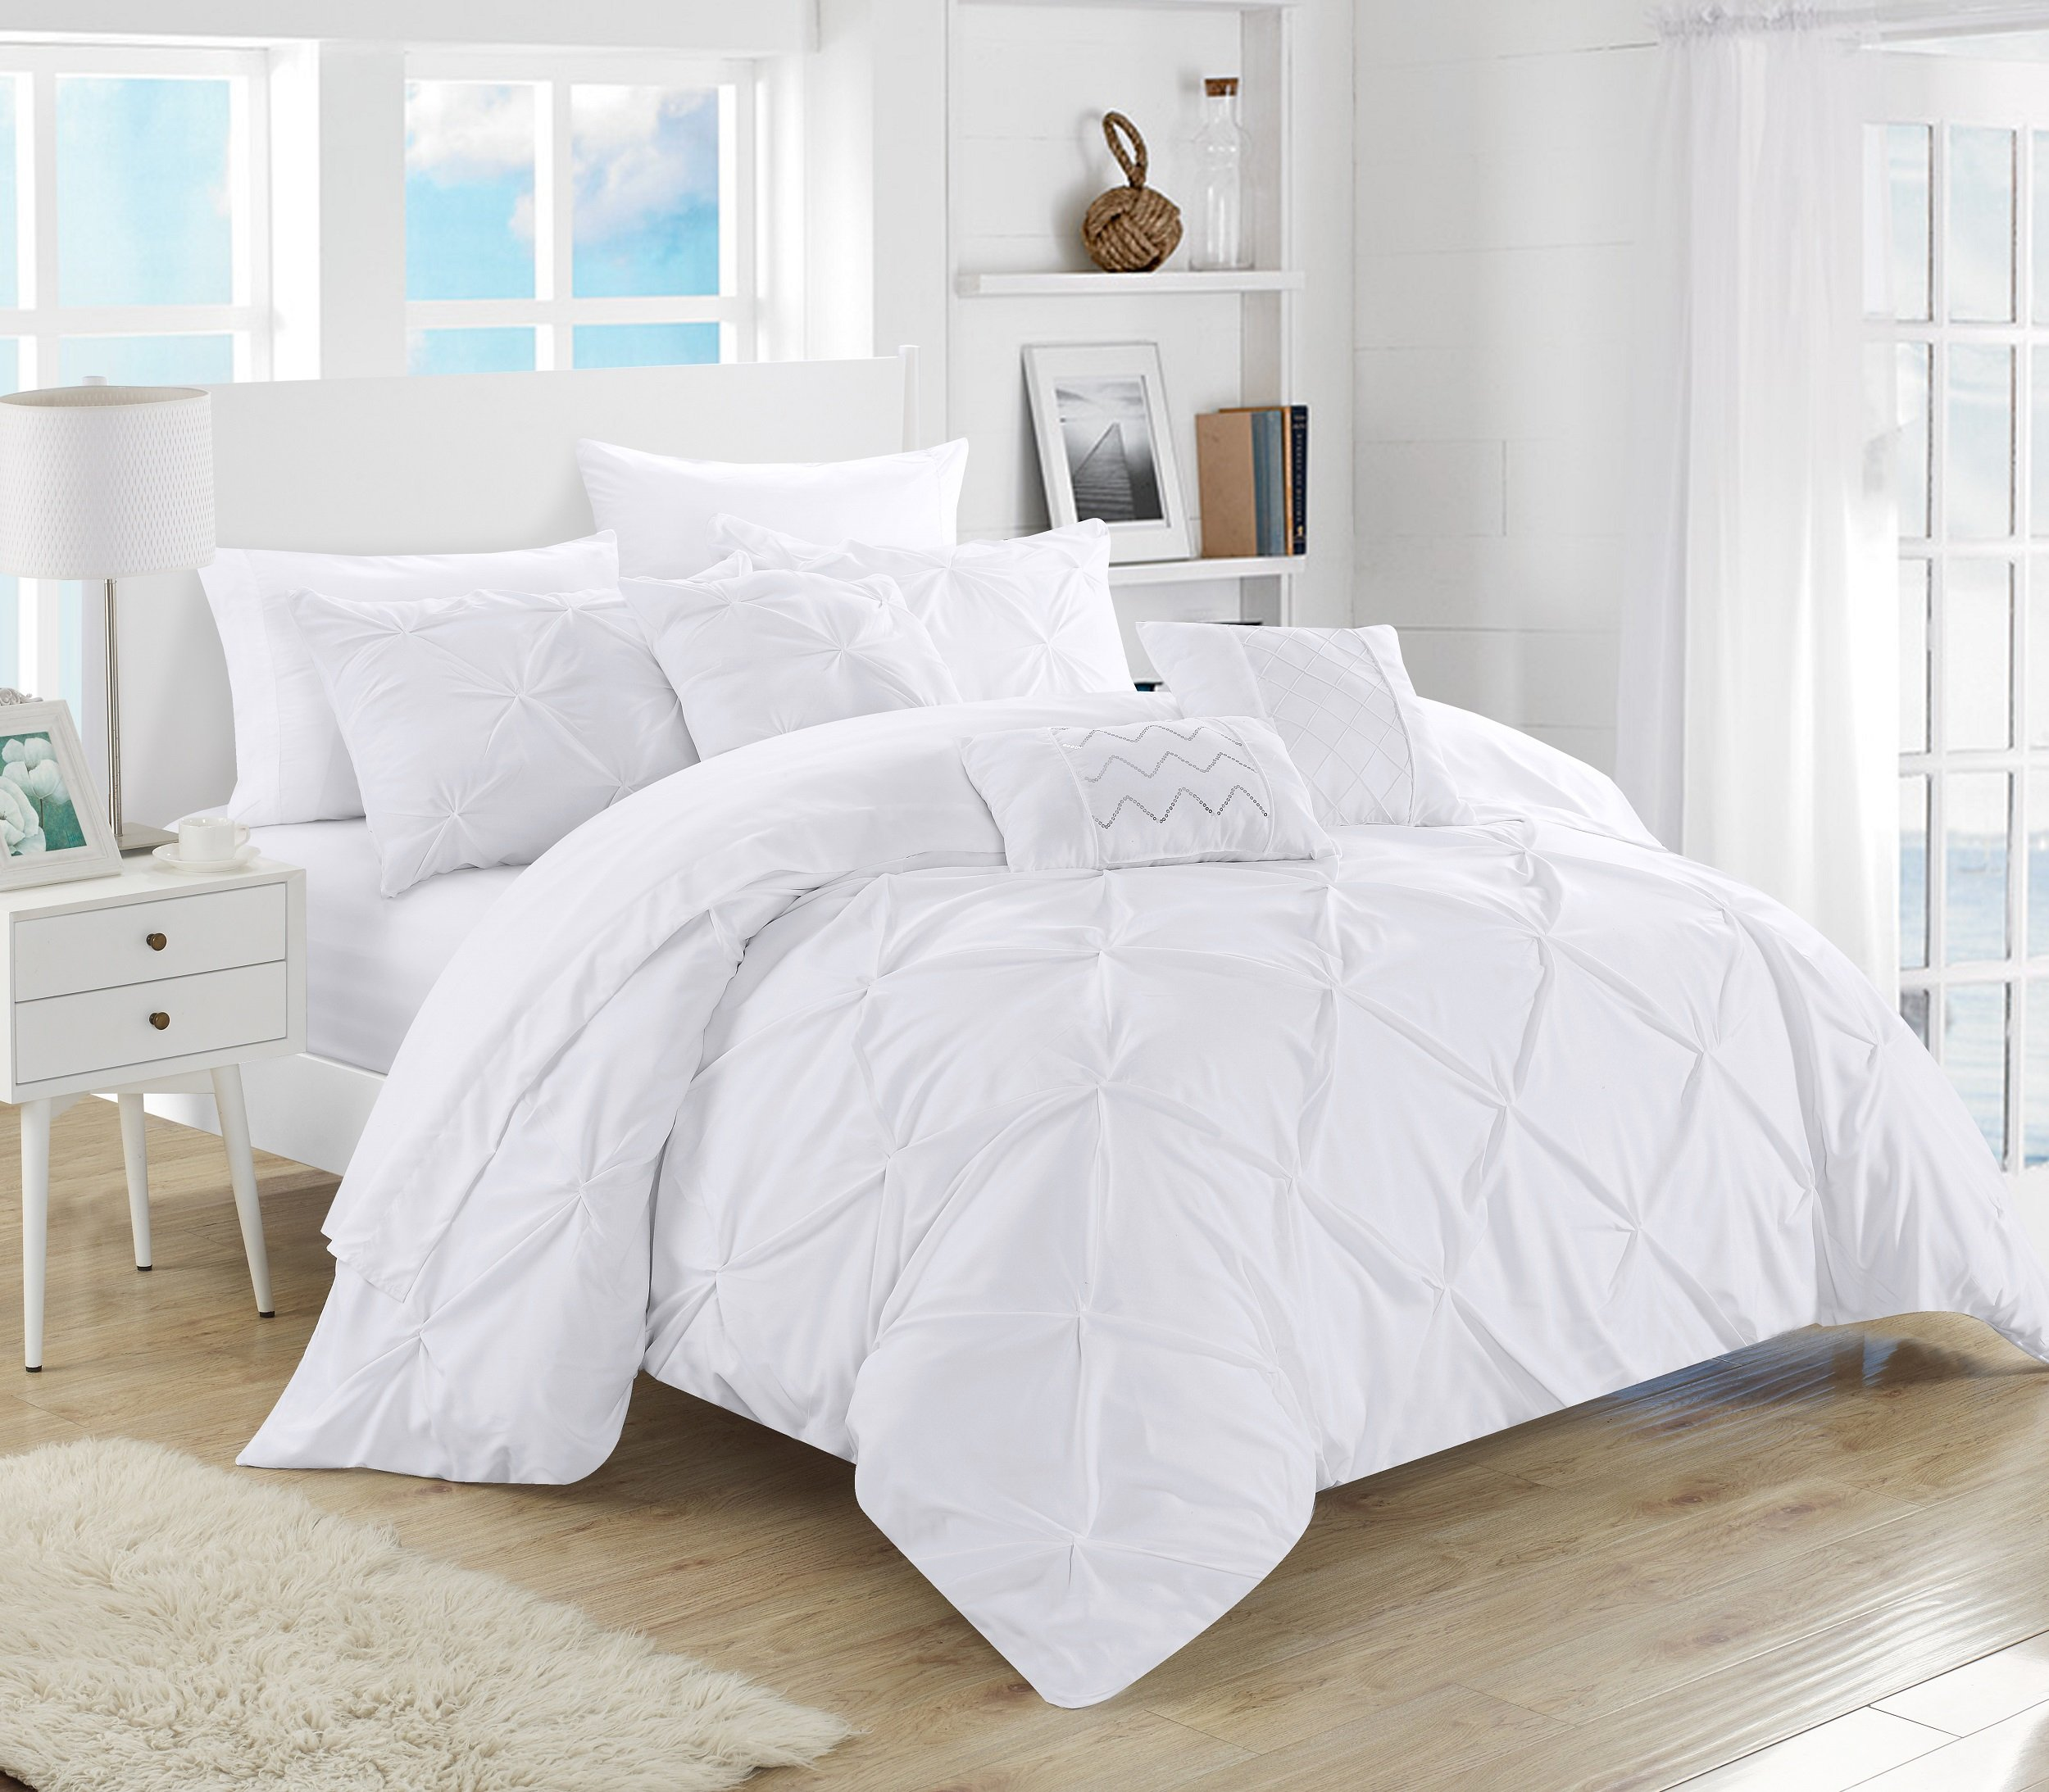 Chic Home 10 Piece Hannah Pinch Pleated, ruffled and pleated complete King Bed In a Bag Comforter Set White With sheet set by Chic Home